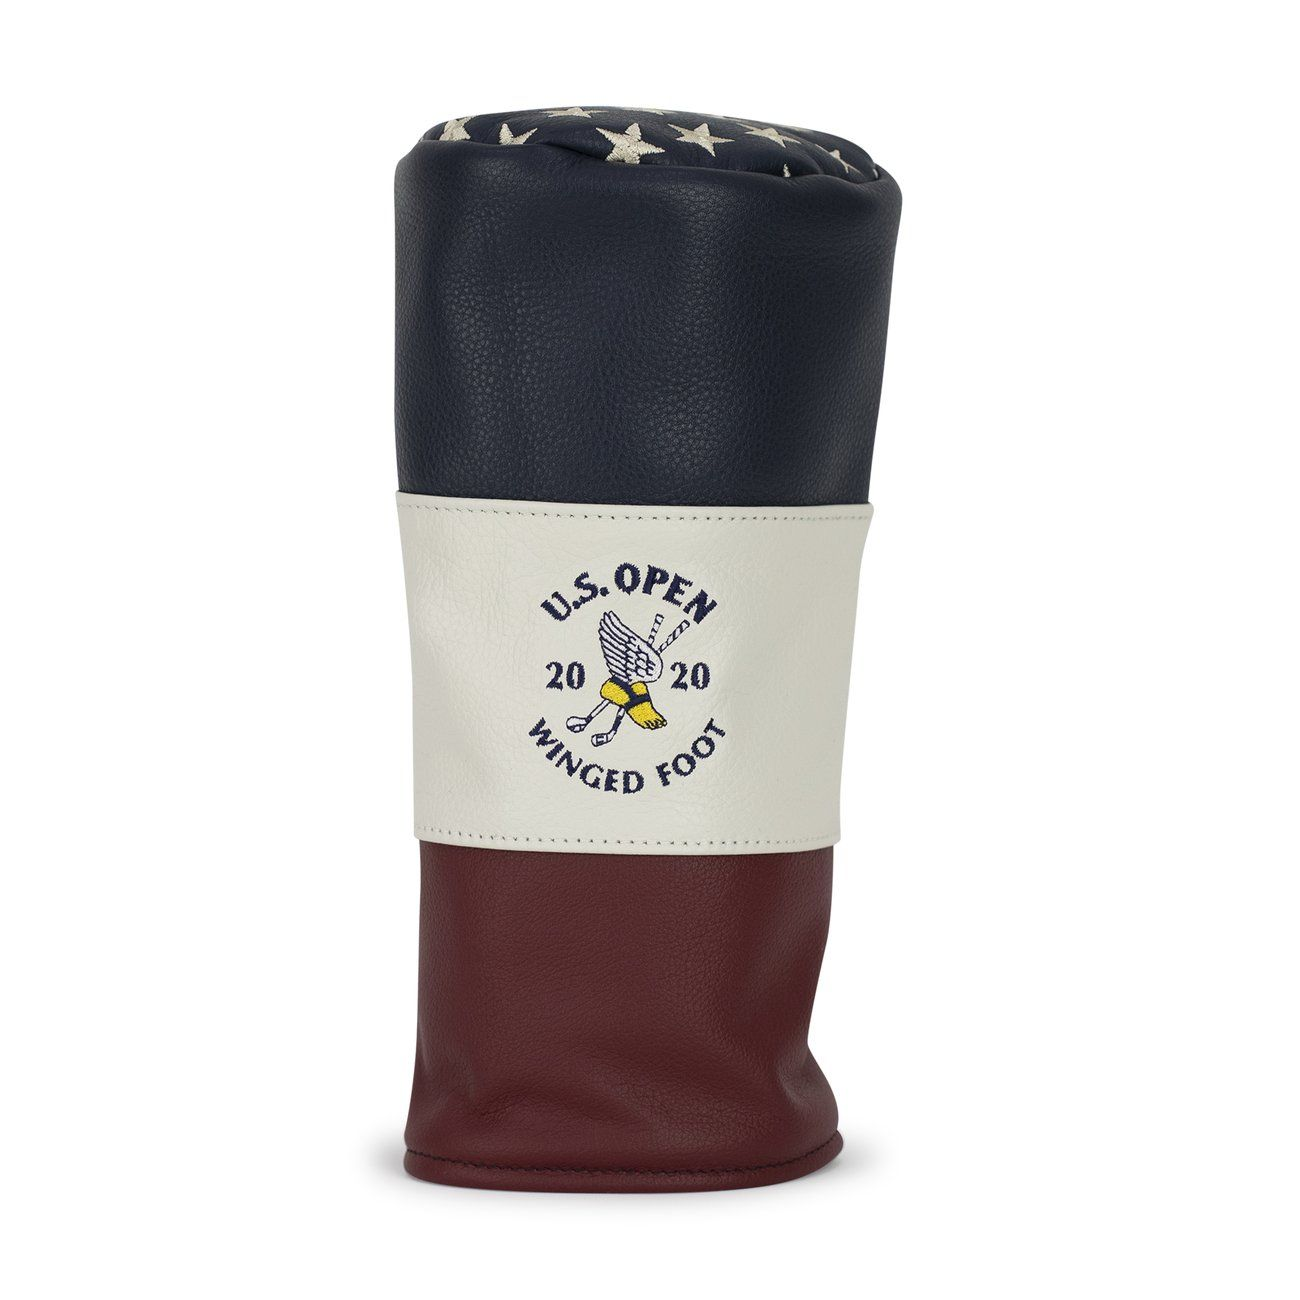 2020 U.S. Open in 2020 Leather label, Personalized